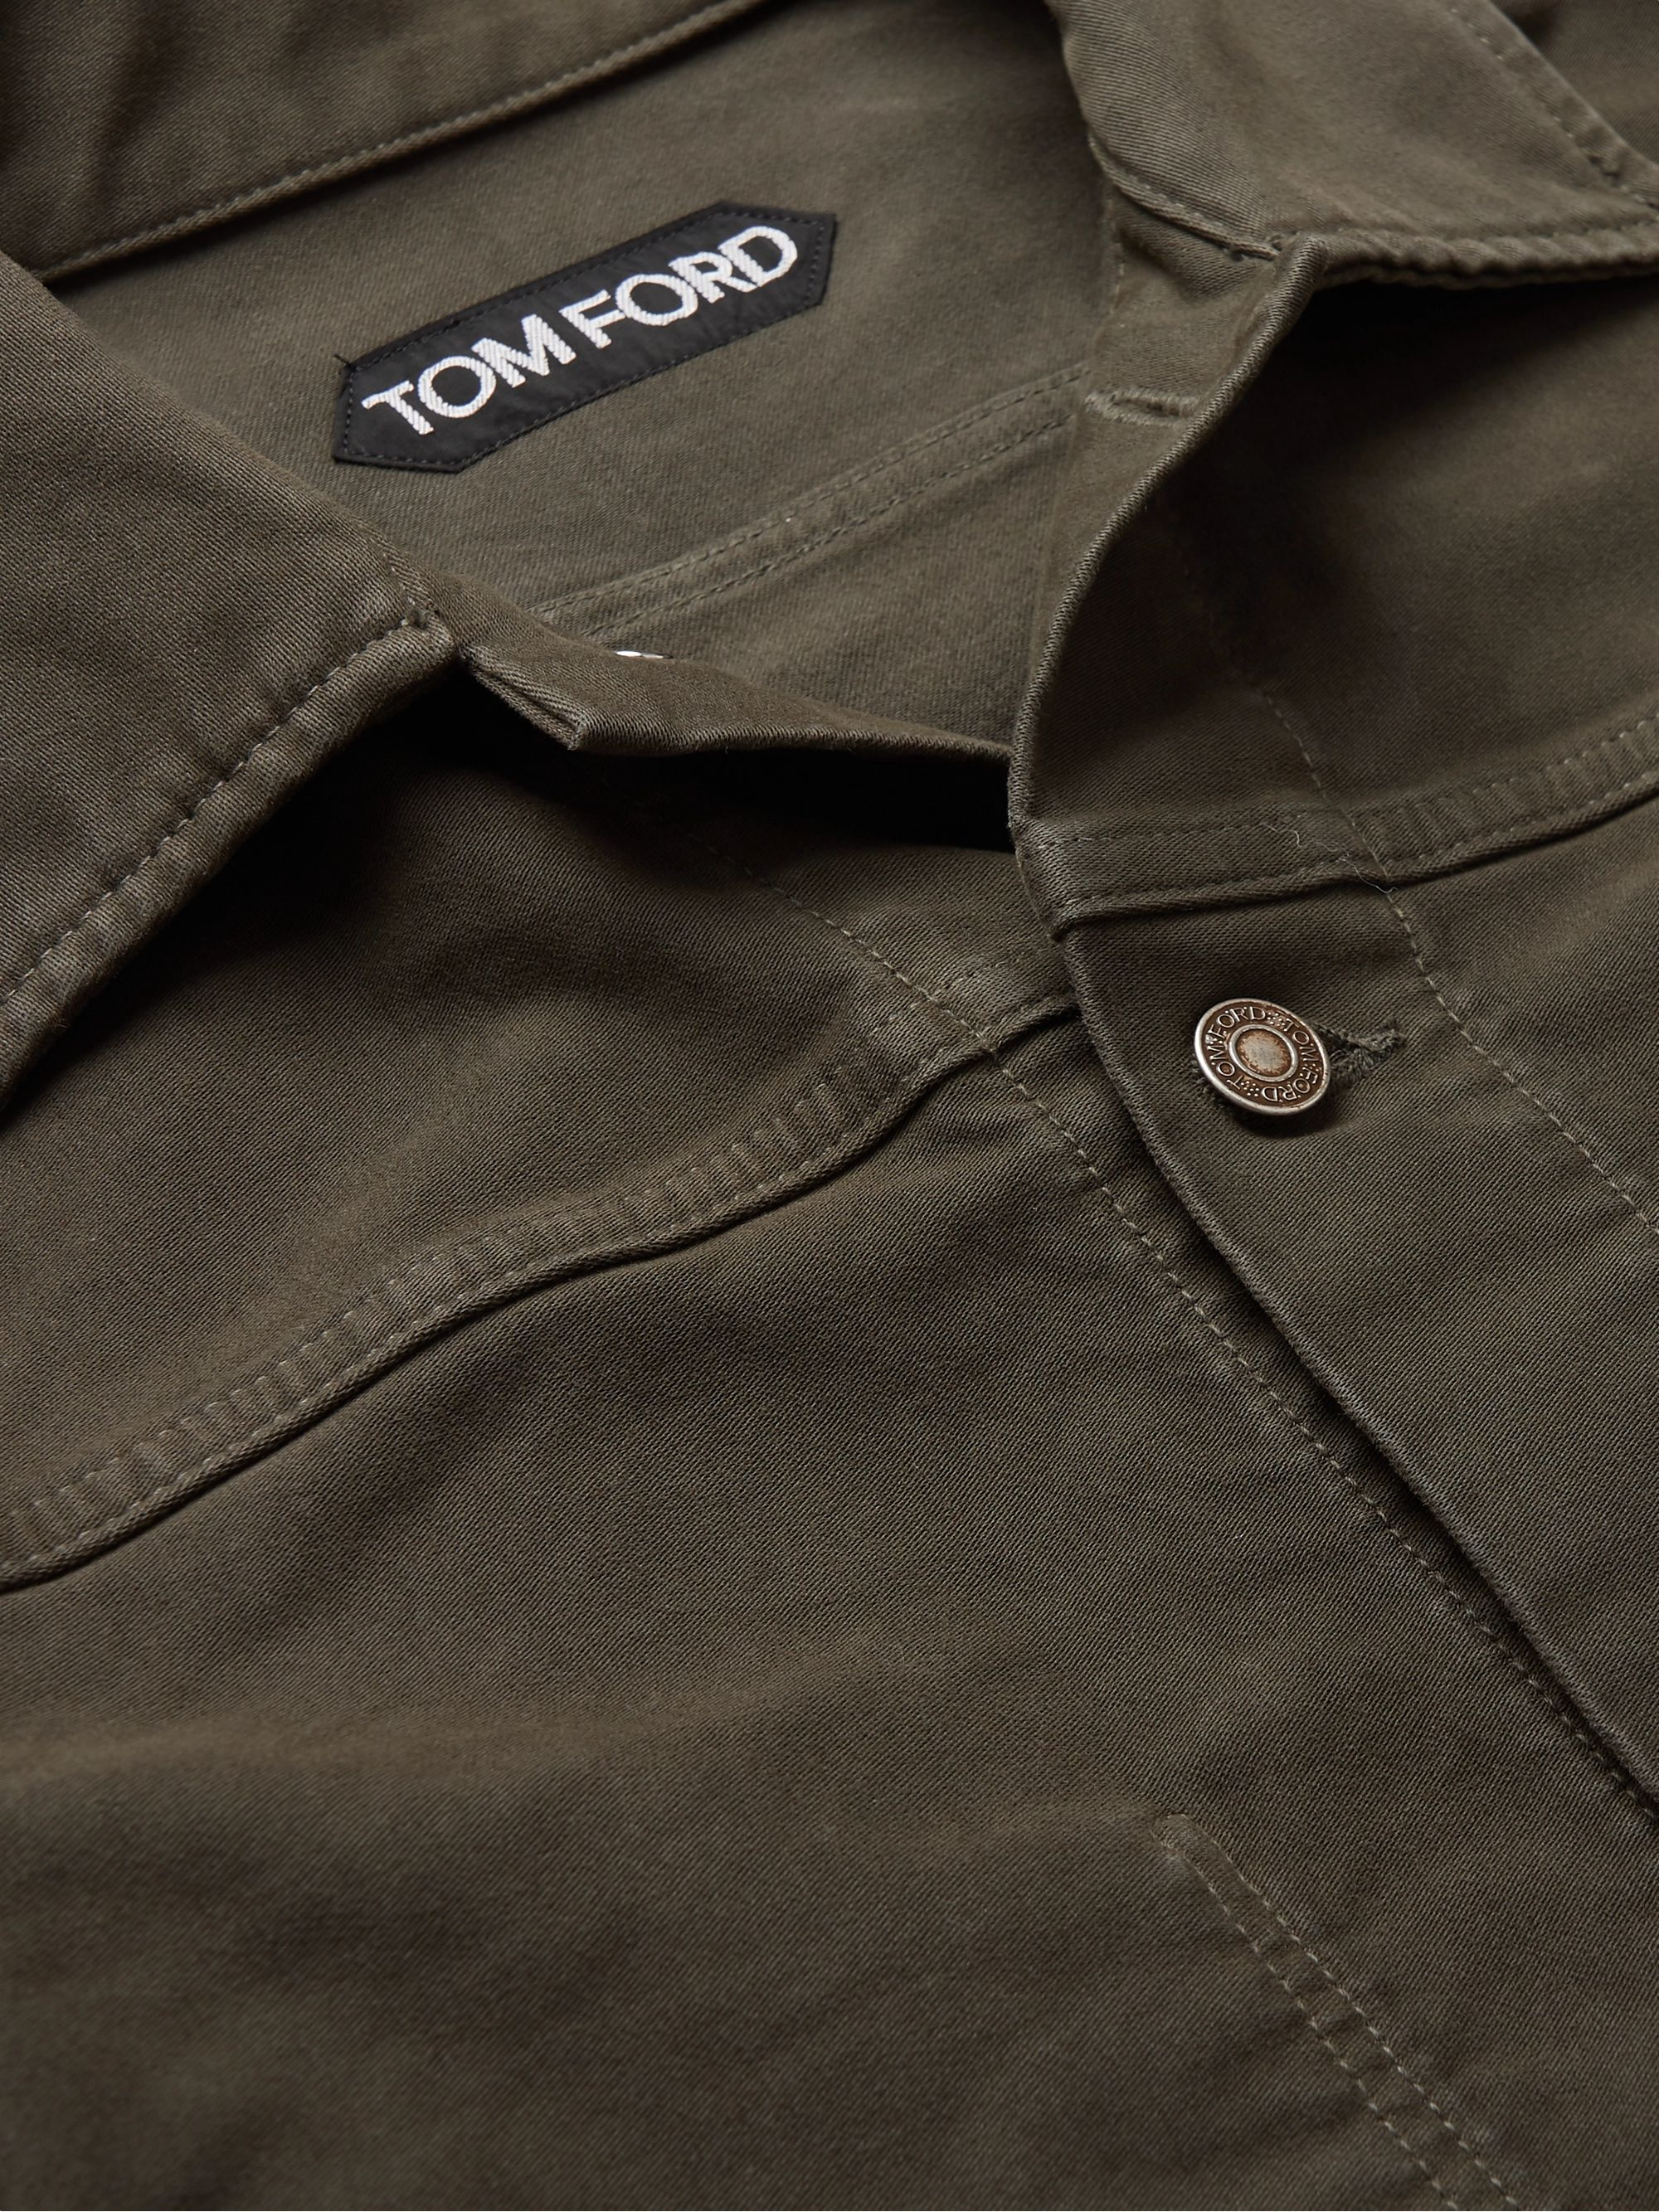 Army Green Cotton-moleskin Trucker Jacket | Tom Ford